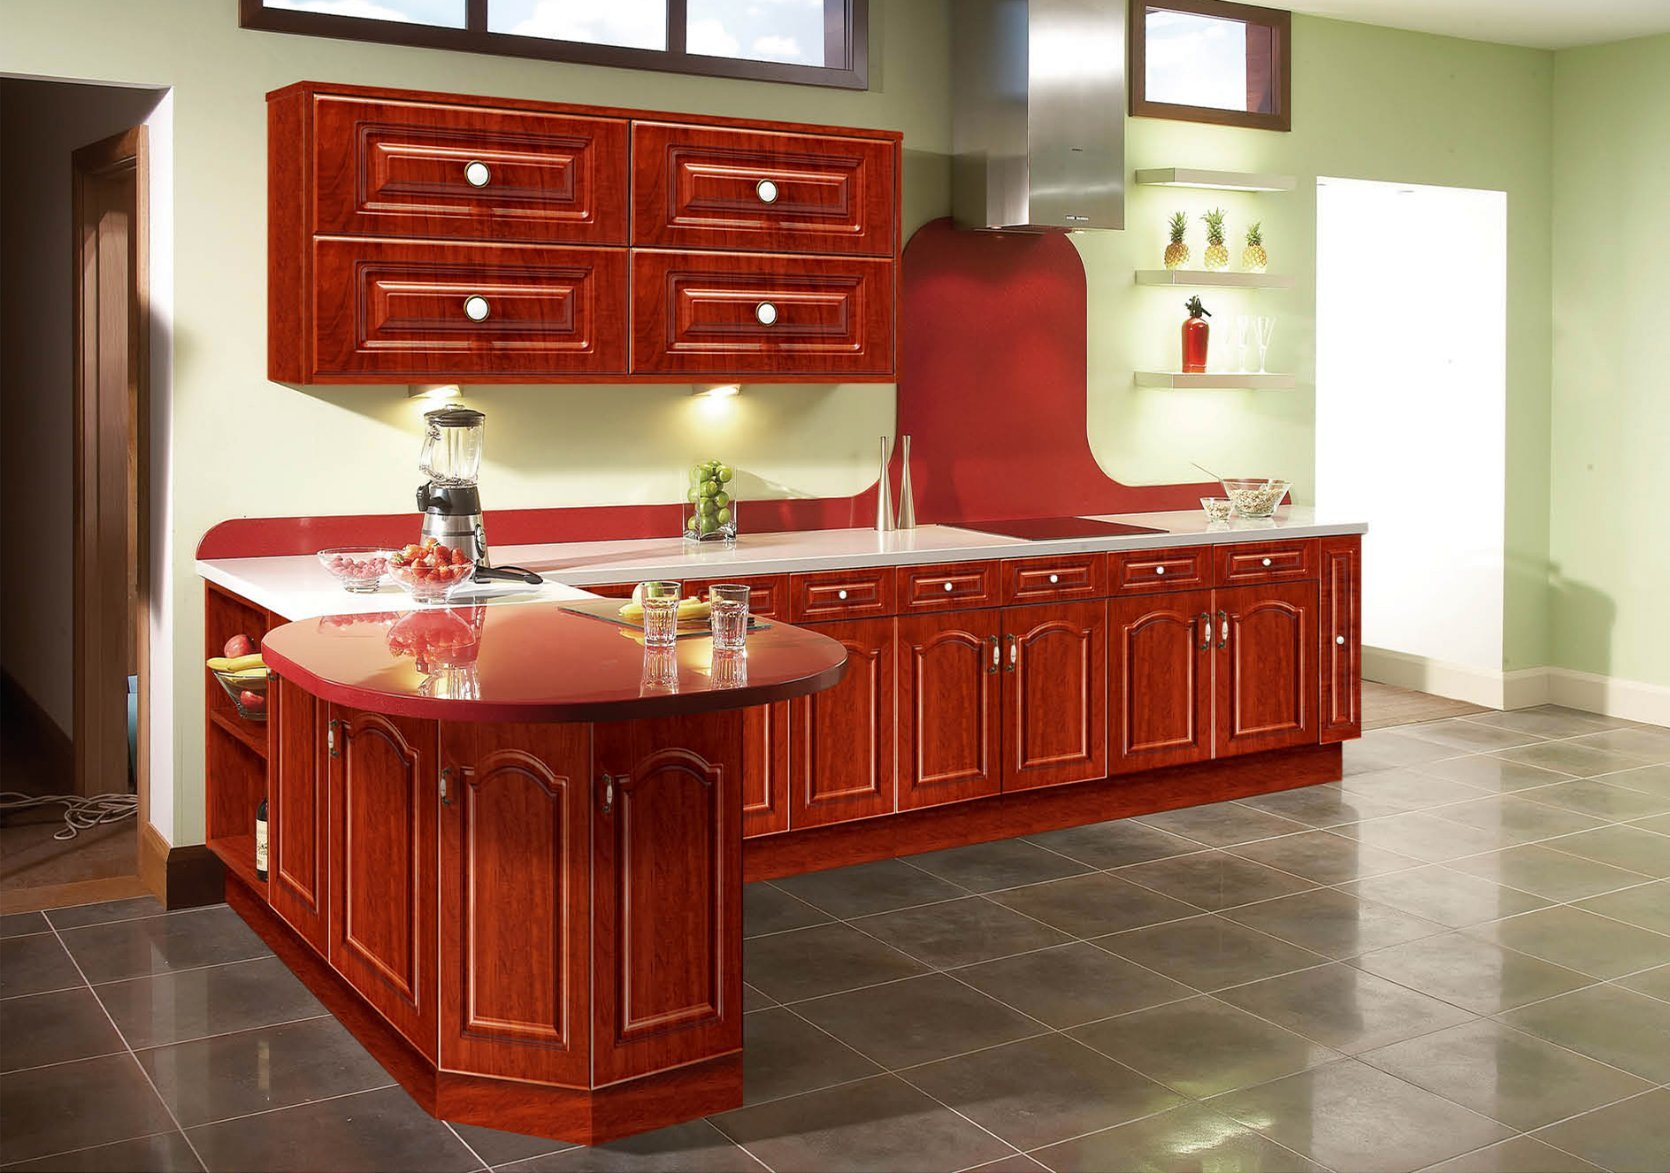 Attractive China Vinyl Wrap Kitchen Cabinet Door For Shaker Doors Styles (xs 003)    China PVC Kitchen Cabinet, PVC Kitchen